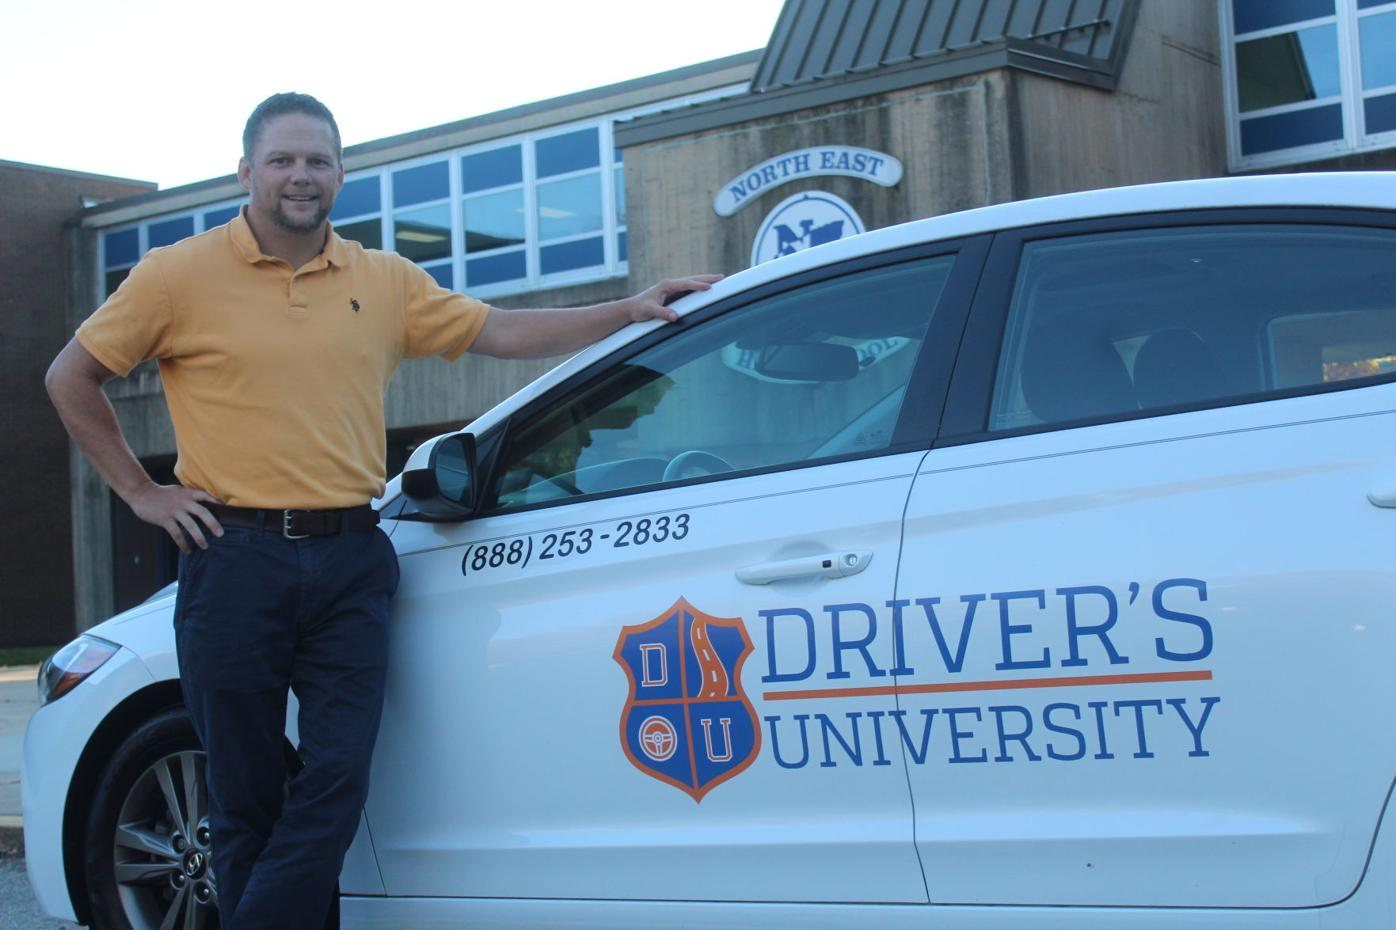 Driver's University is a driving school with its eyes on the future